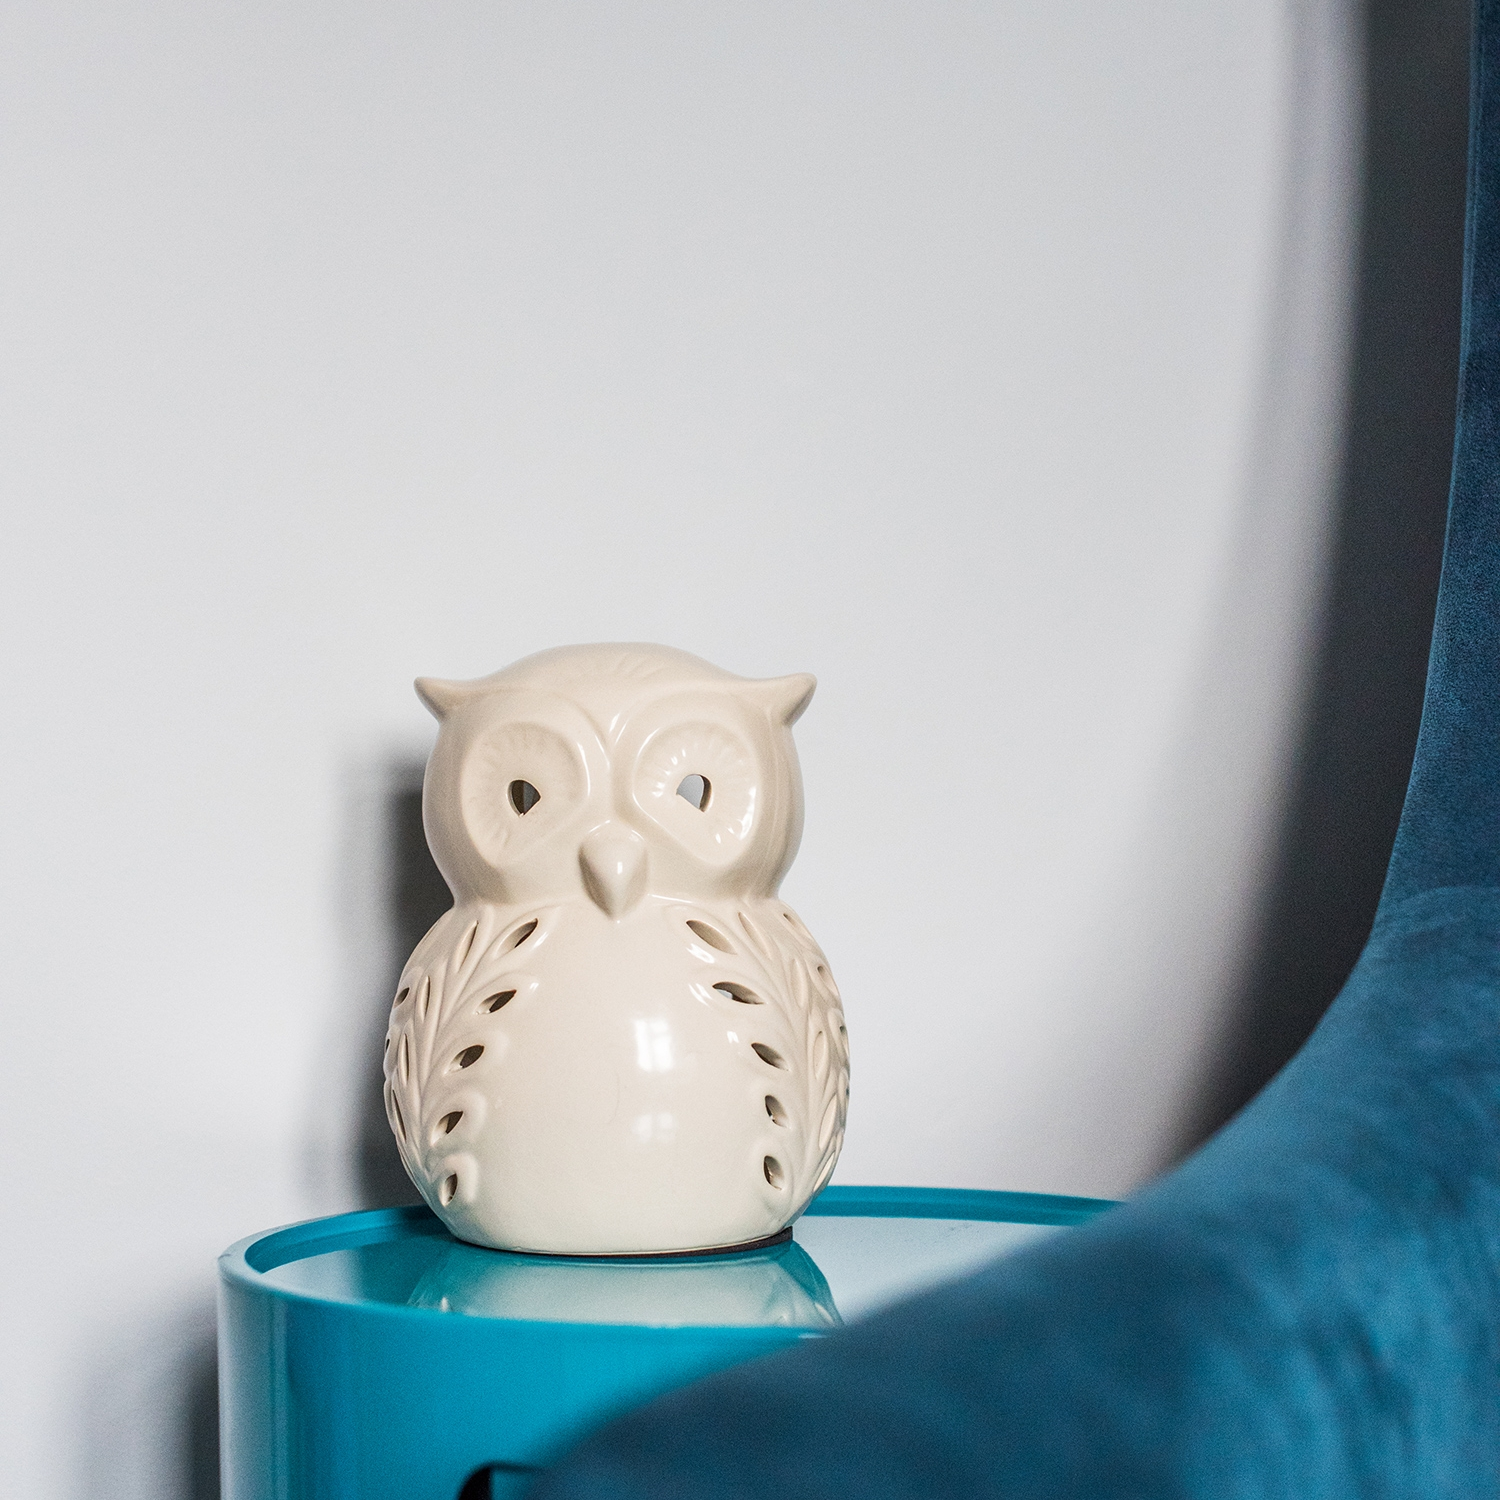 Close up view of owl light in peacock coloured unisex nursery